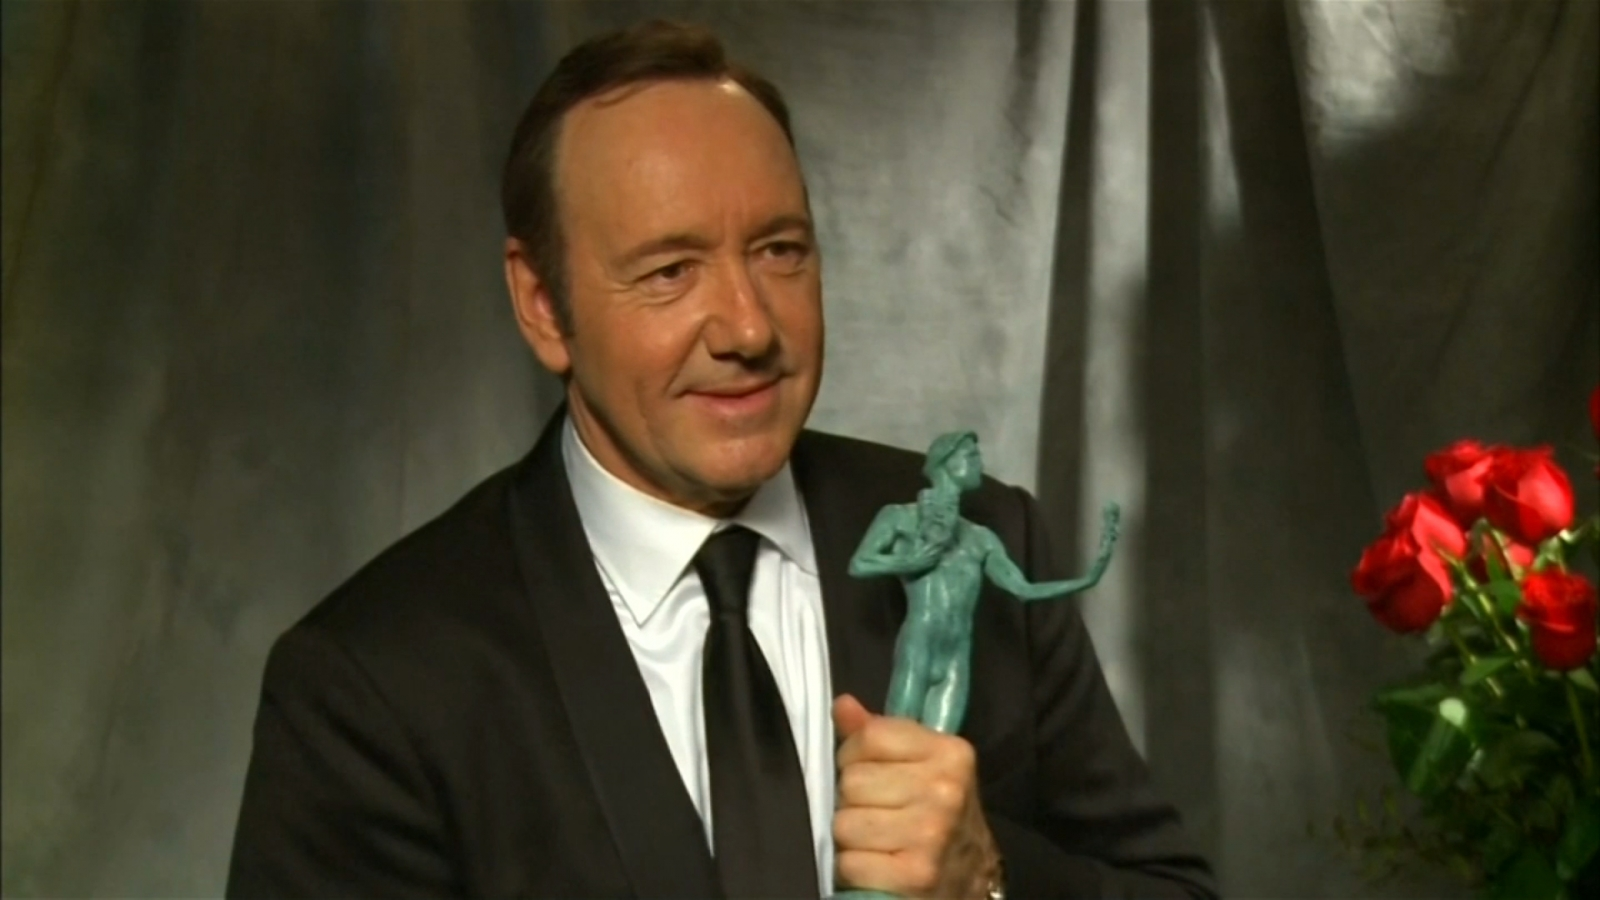 kevin-spacey-apologizes-for-sexual-advance-claim-made-by-former-child-actor